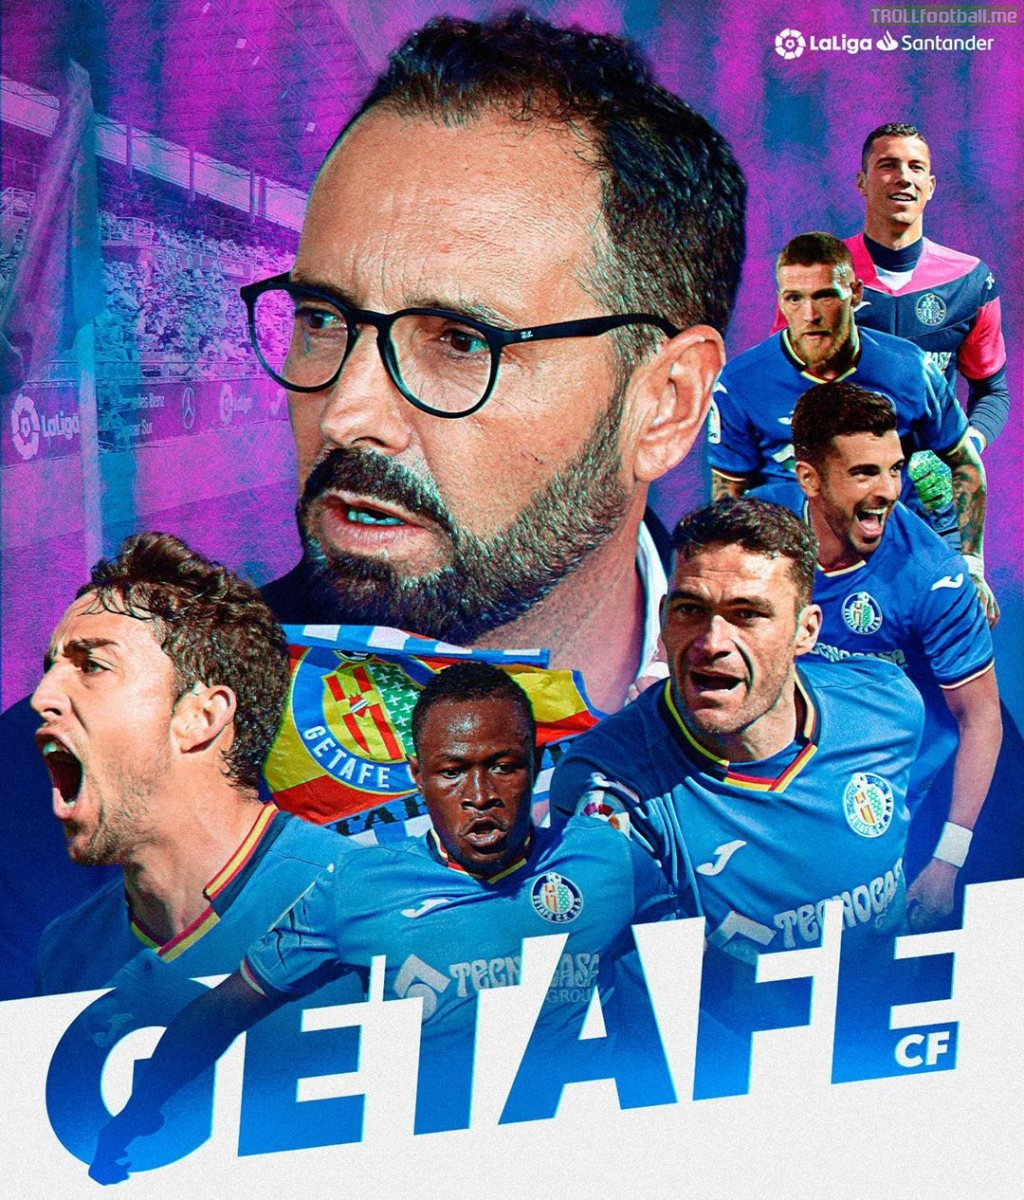 Getafe have achieved their best ever finish (5th) in La Liga history